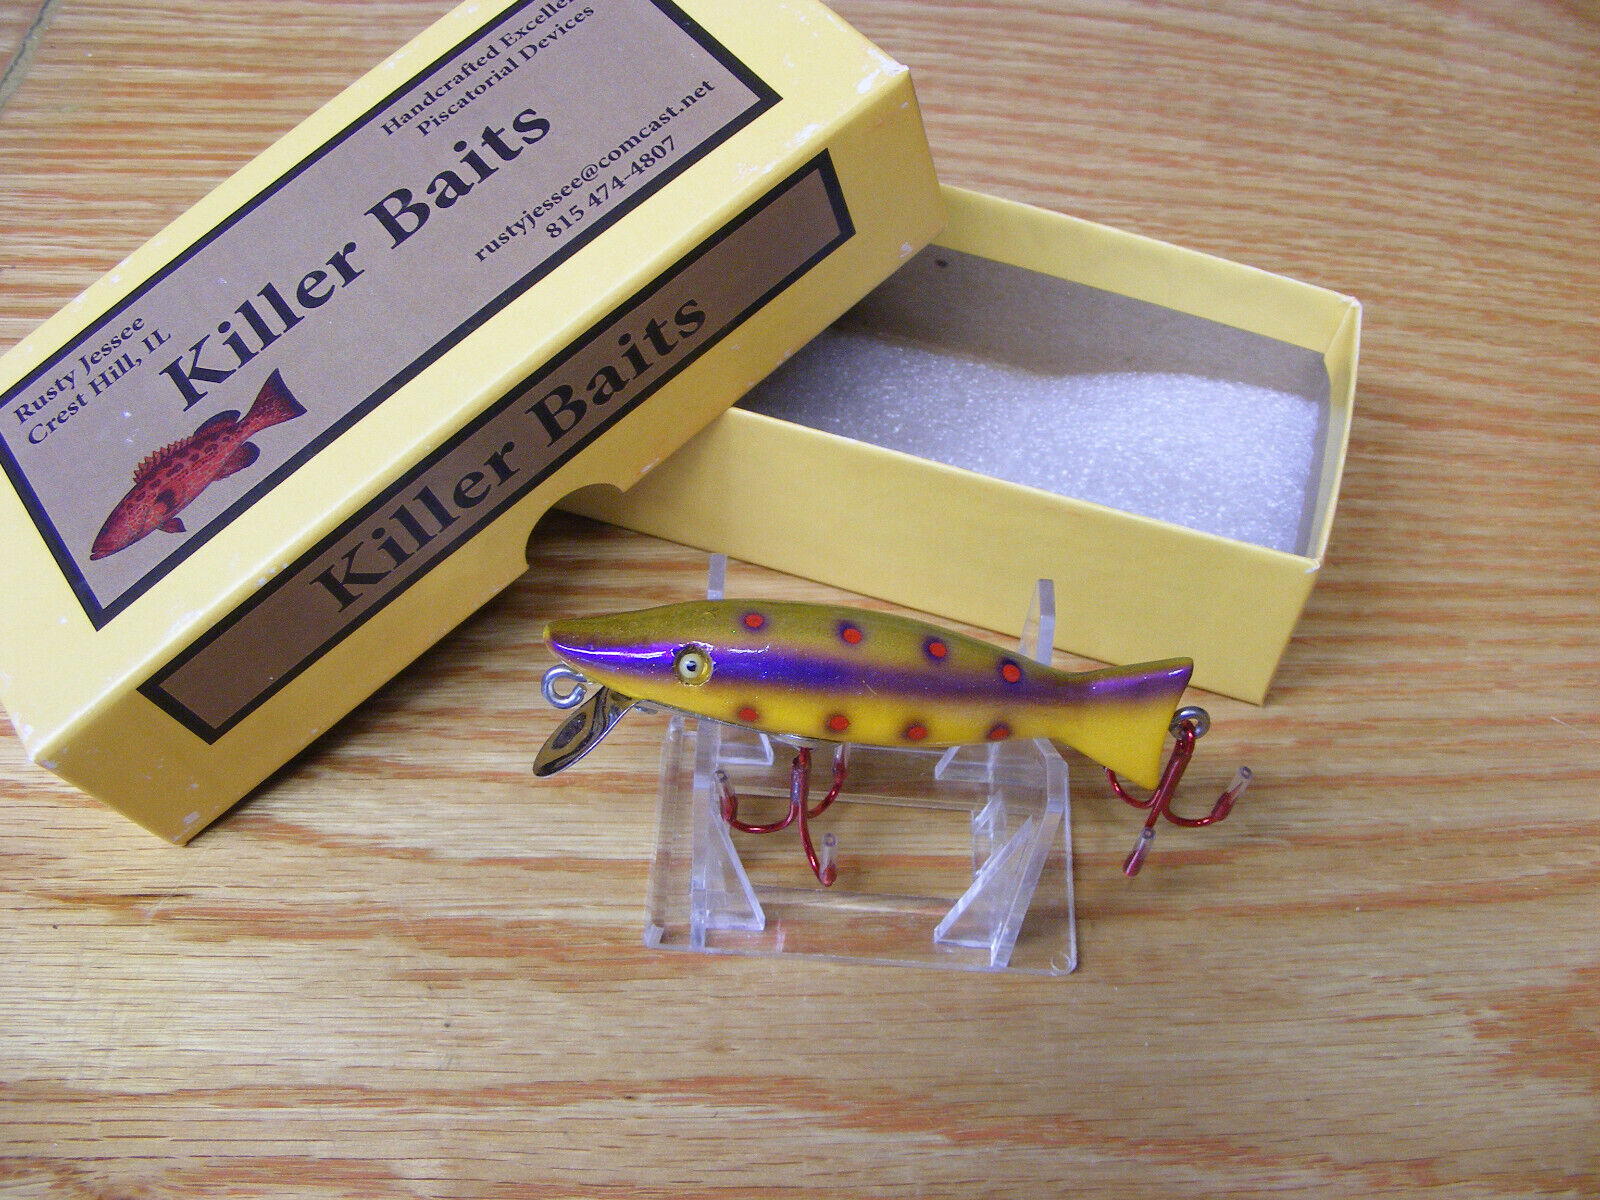 Killer Baits Rusty Jessee Paw Paw Style Glasseye Caster Purple  Pearl Spot color  team promotions